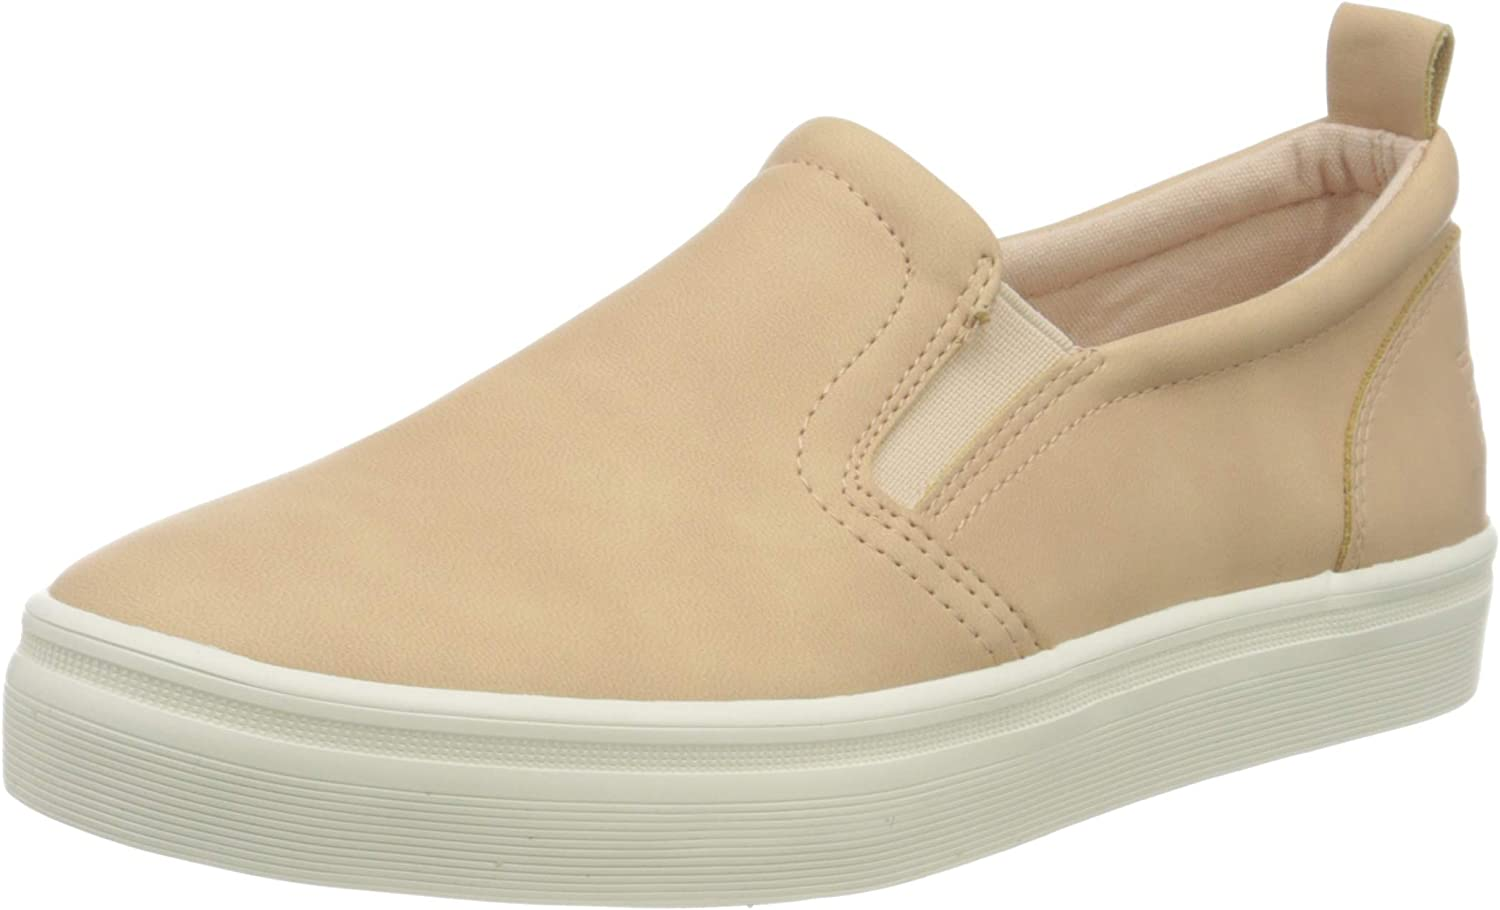 All stores are sold Esprit Women's 021ek1w320 Popular products Sneaker